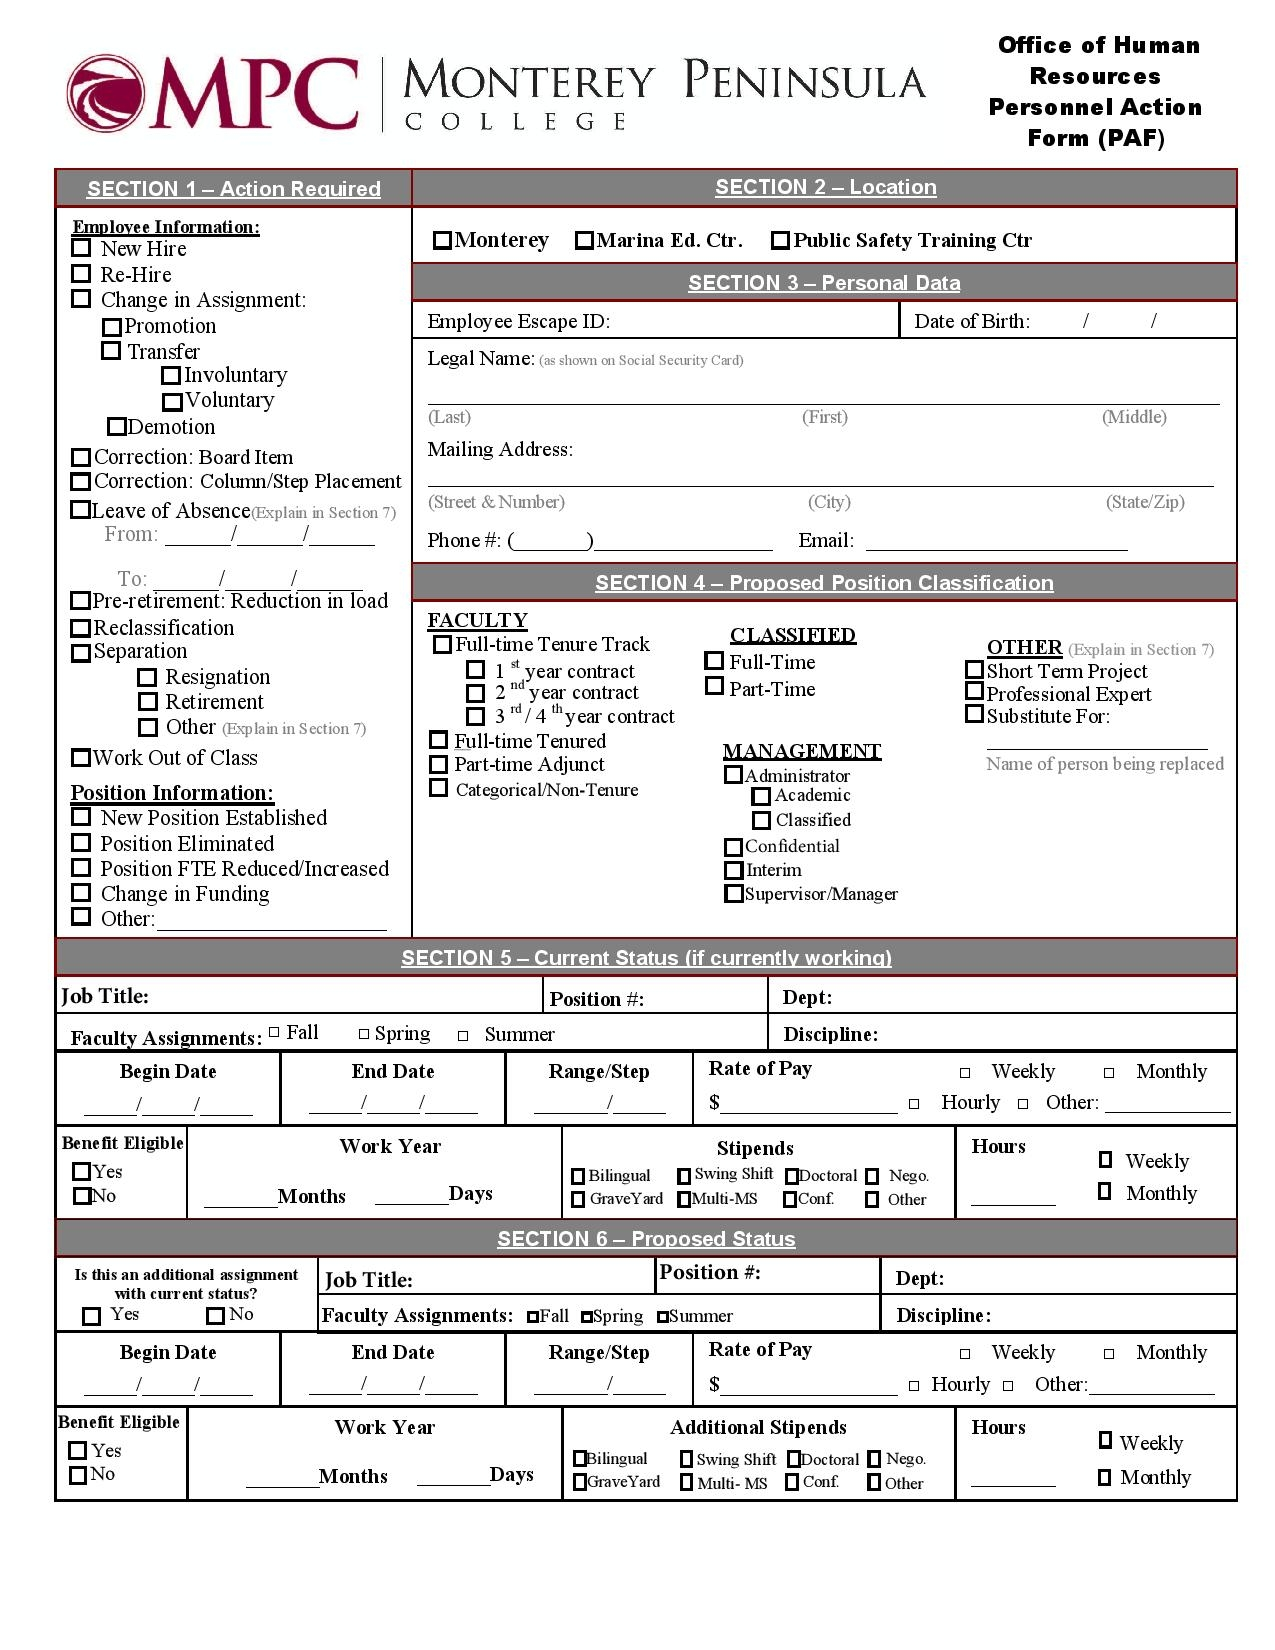 hr personnel action form page 003